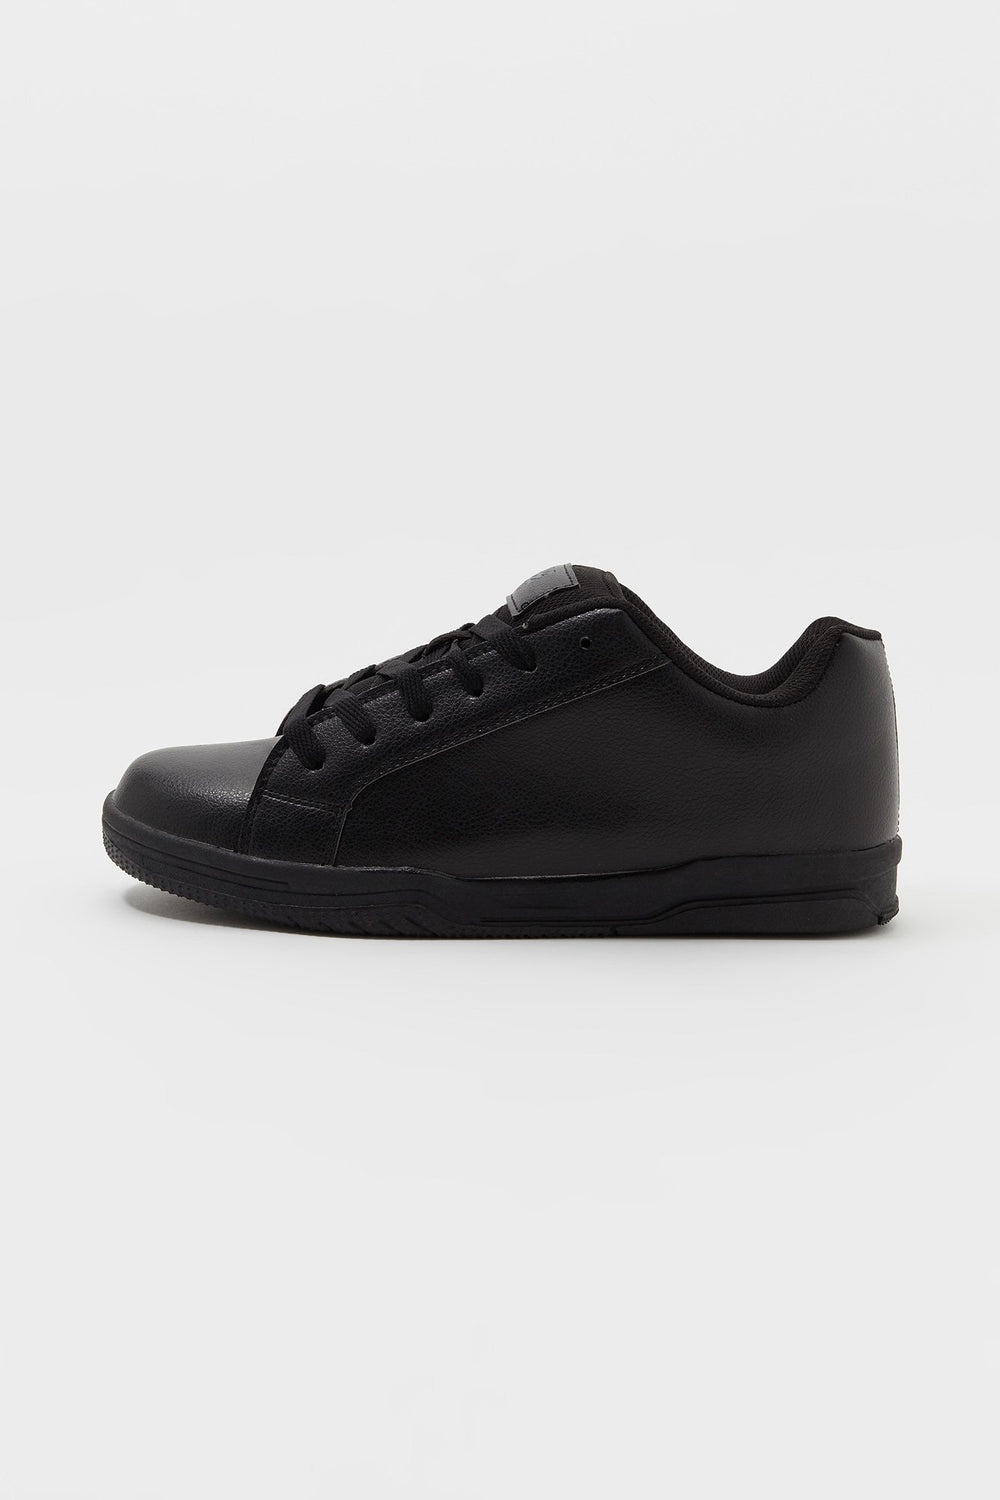 Chaussures Skate Zoo York Homme Noir